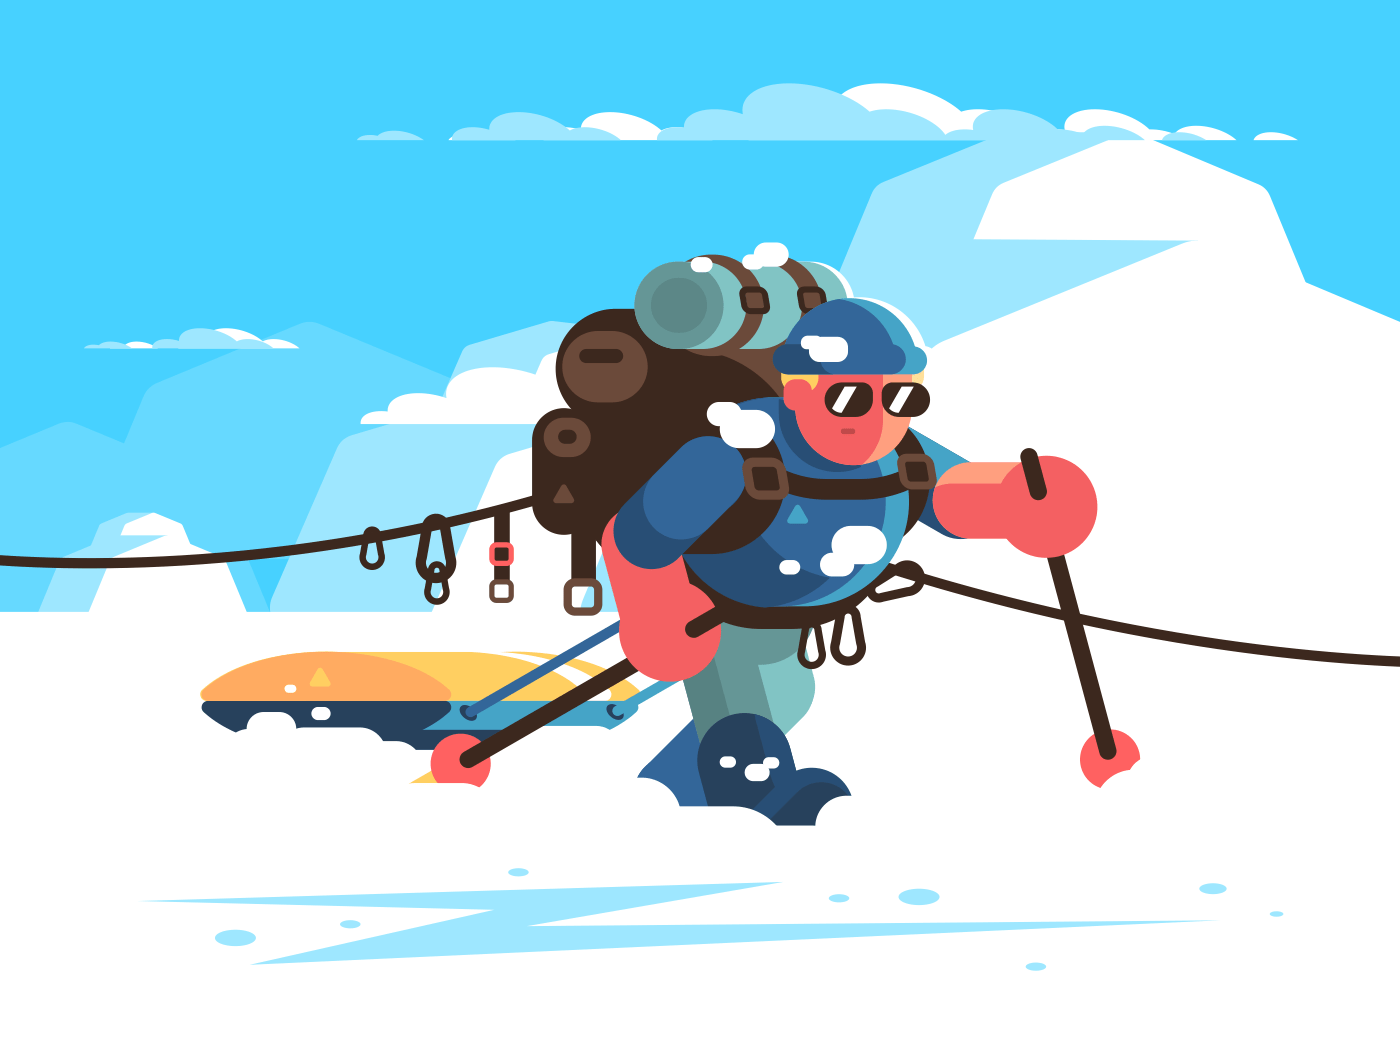 Man alpinist character with equipment in snowy mountains. Vector illustration